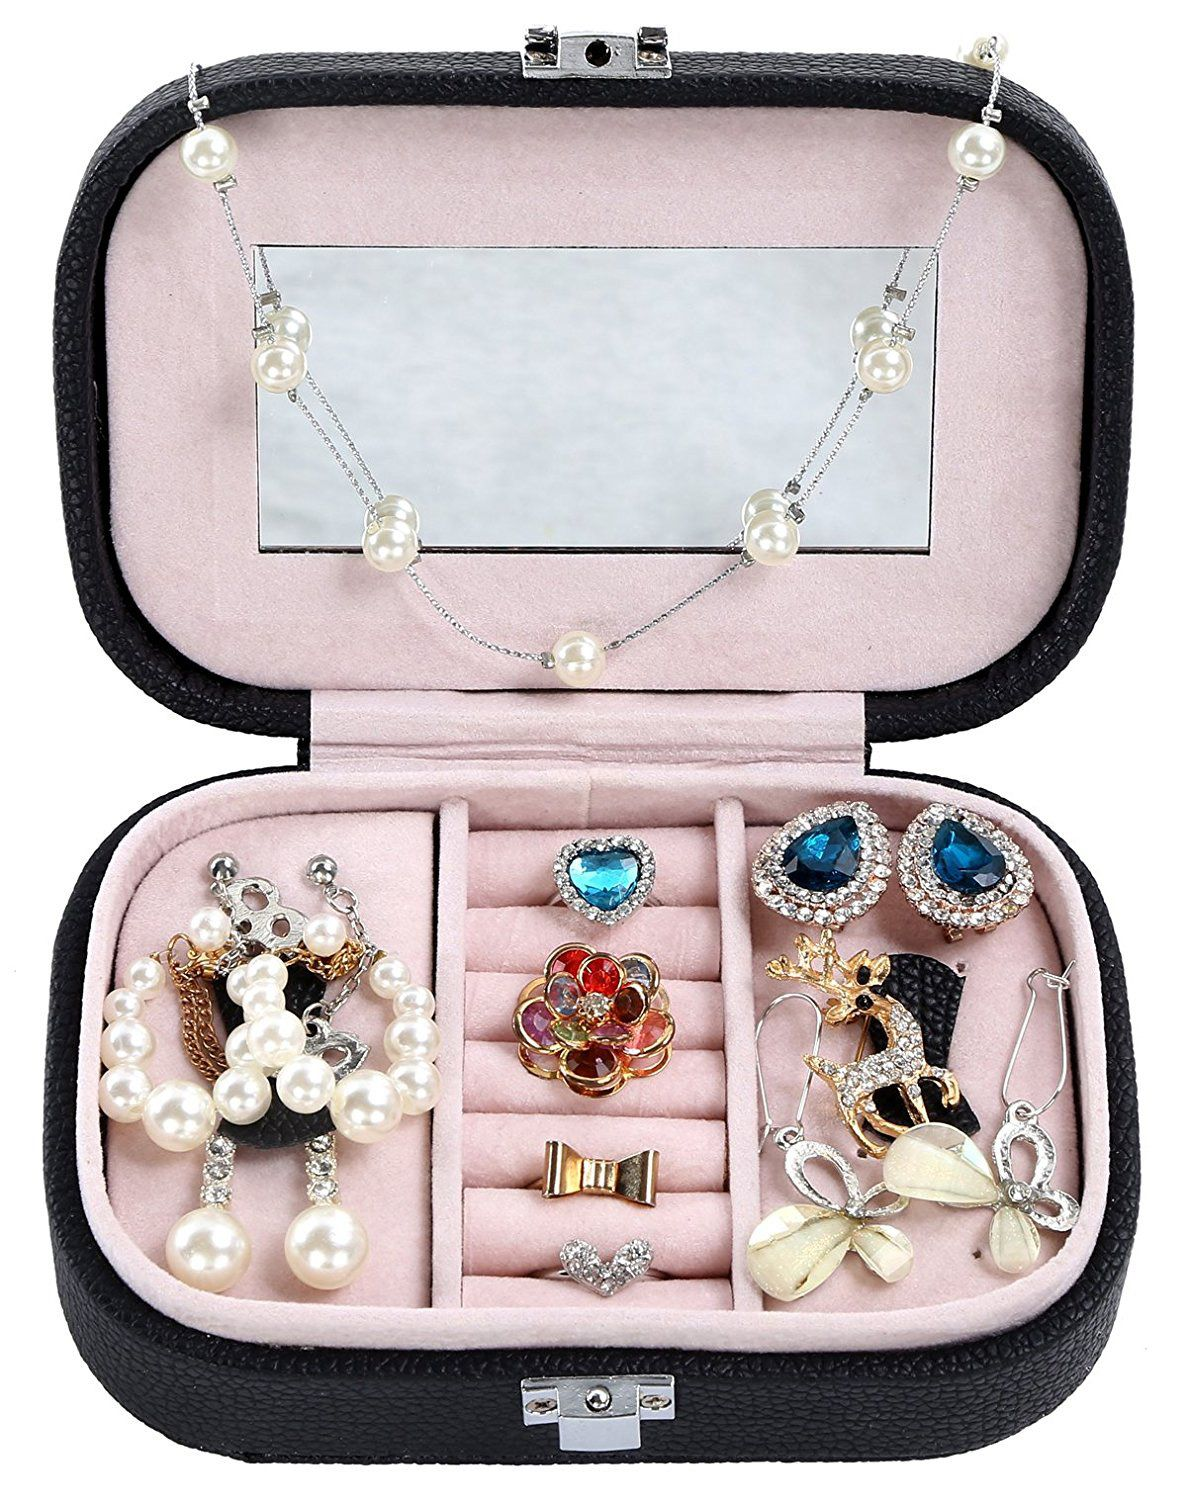 The 15 Best Locking Jewelry Boxes Locking jewelry box and Box